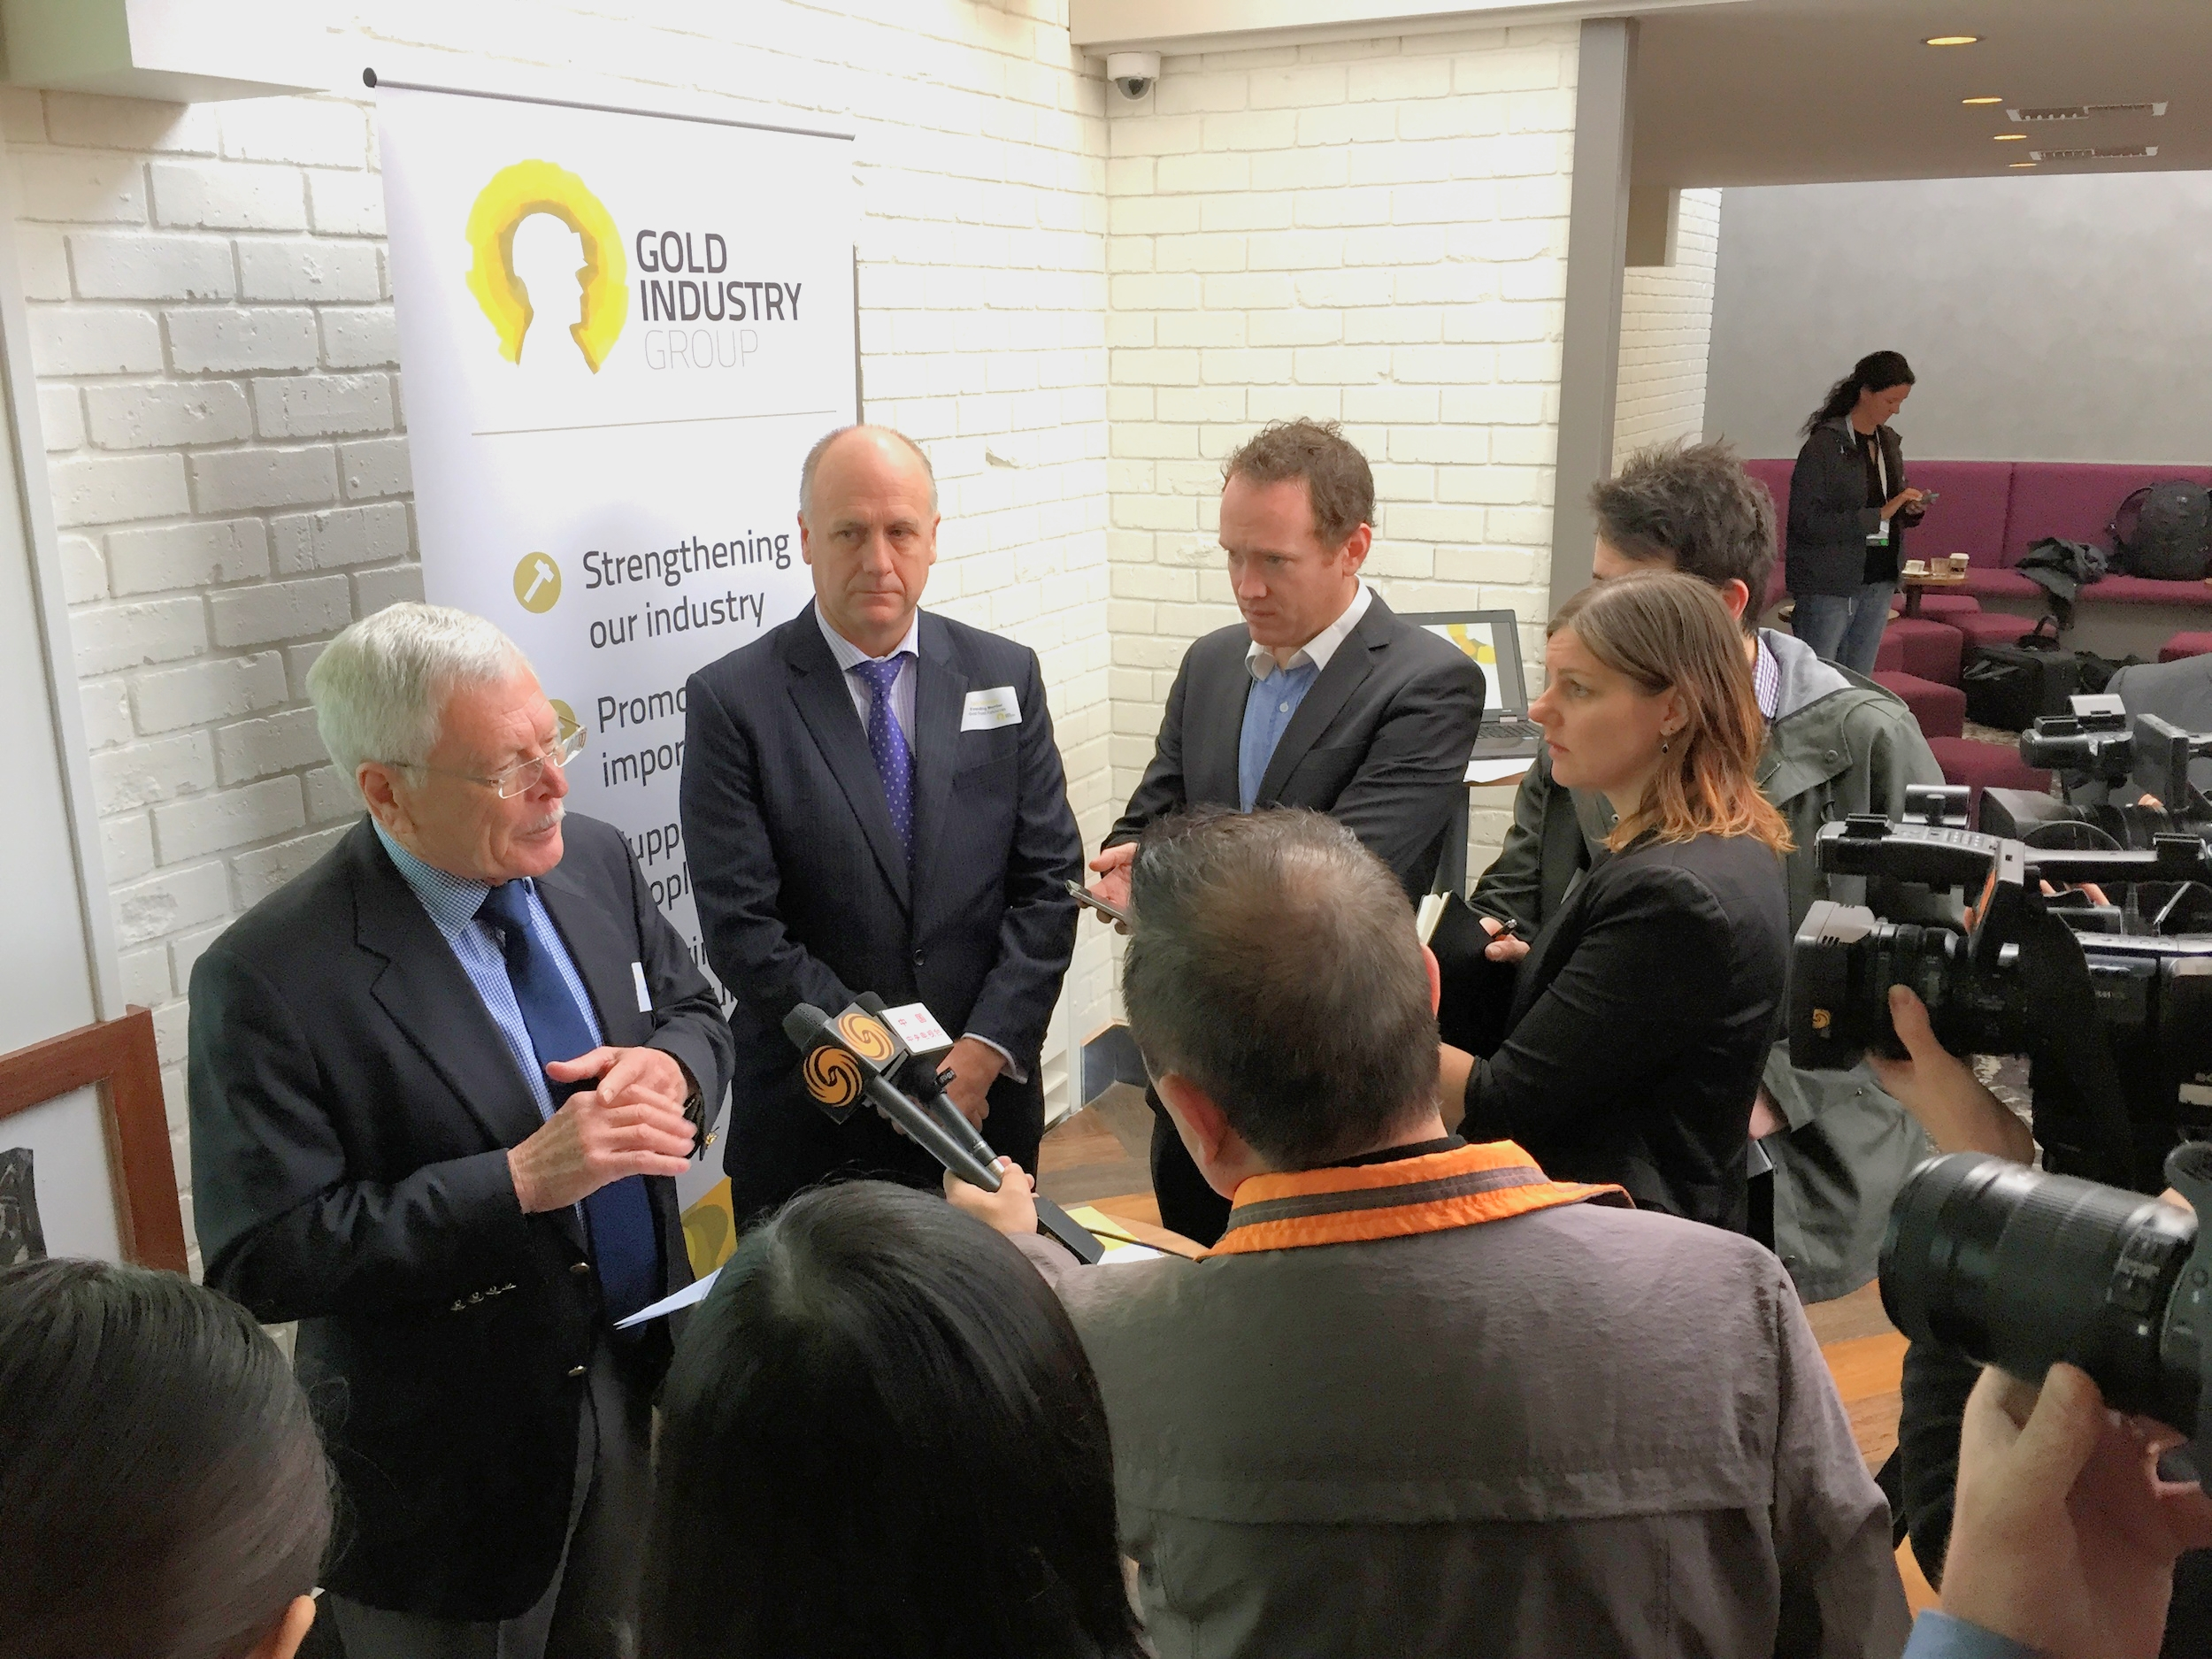 Chairman Norman Moore and Gold Road Resources Ian Murray talk to the media about the new Gold Industry Group.